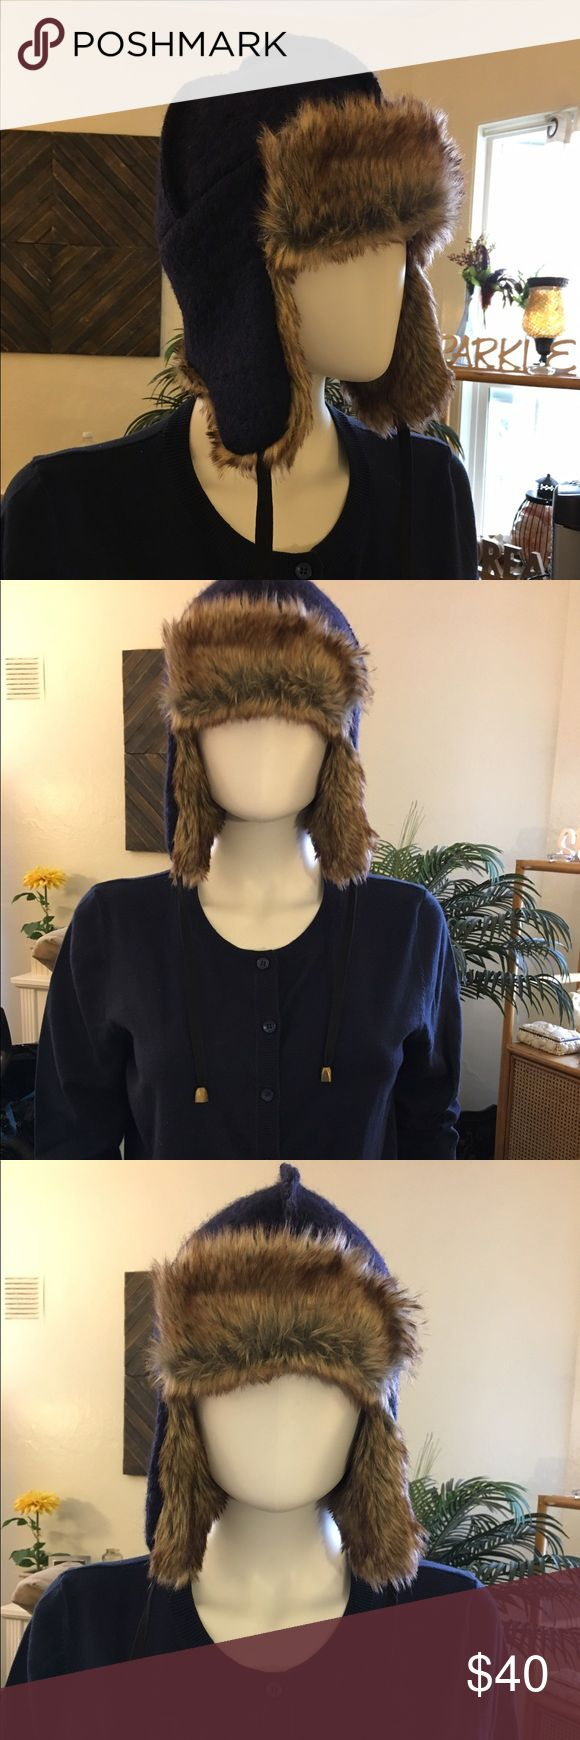 Urban Outfitters Navy Blue Fur-lined Trapper Hat 💙This is a Navy Blue fur-lined trapper hat from Urban Outfitters. The fur is inside the entire interior of the hat. There are two strings with a metal bead that comes down from each side of the hat. So cute! 💙 BDG Accessories Hats